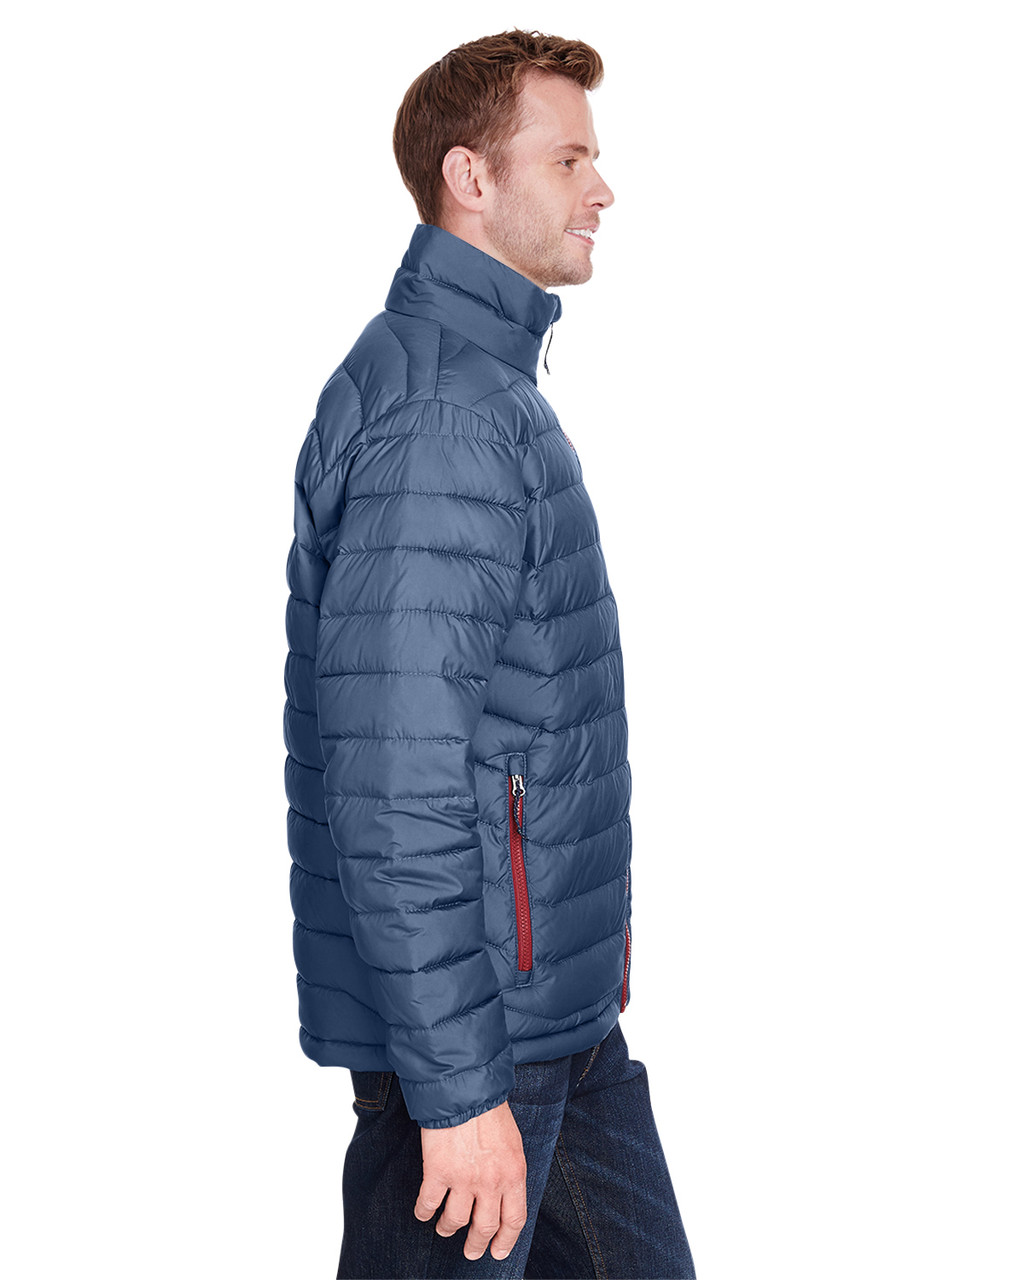 Dark Mountain - Side, 1698001 Columbia Men's Powder Lite™ Jacket | Blankclothing.ca